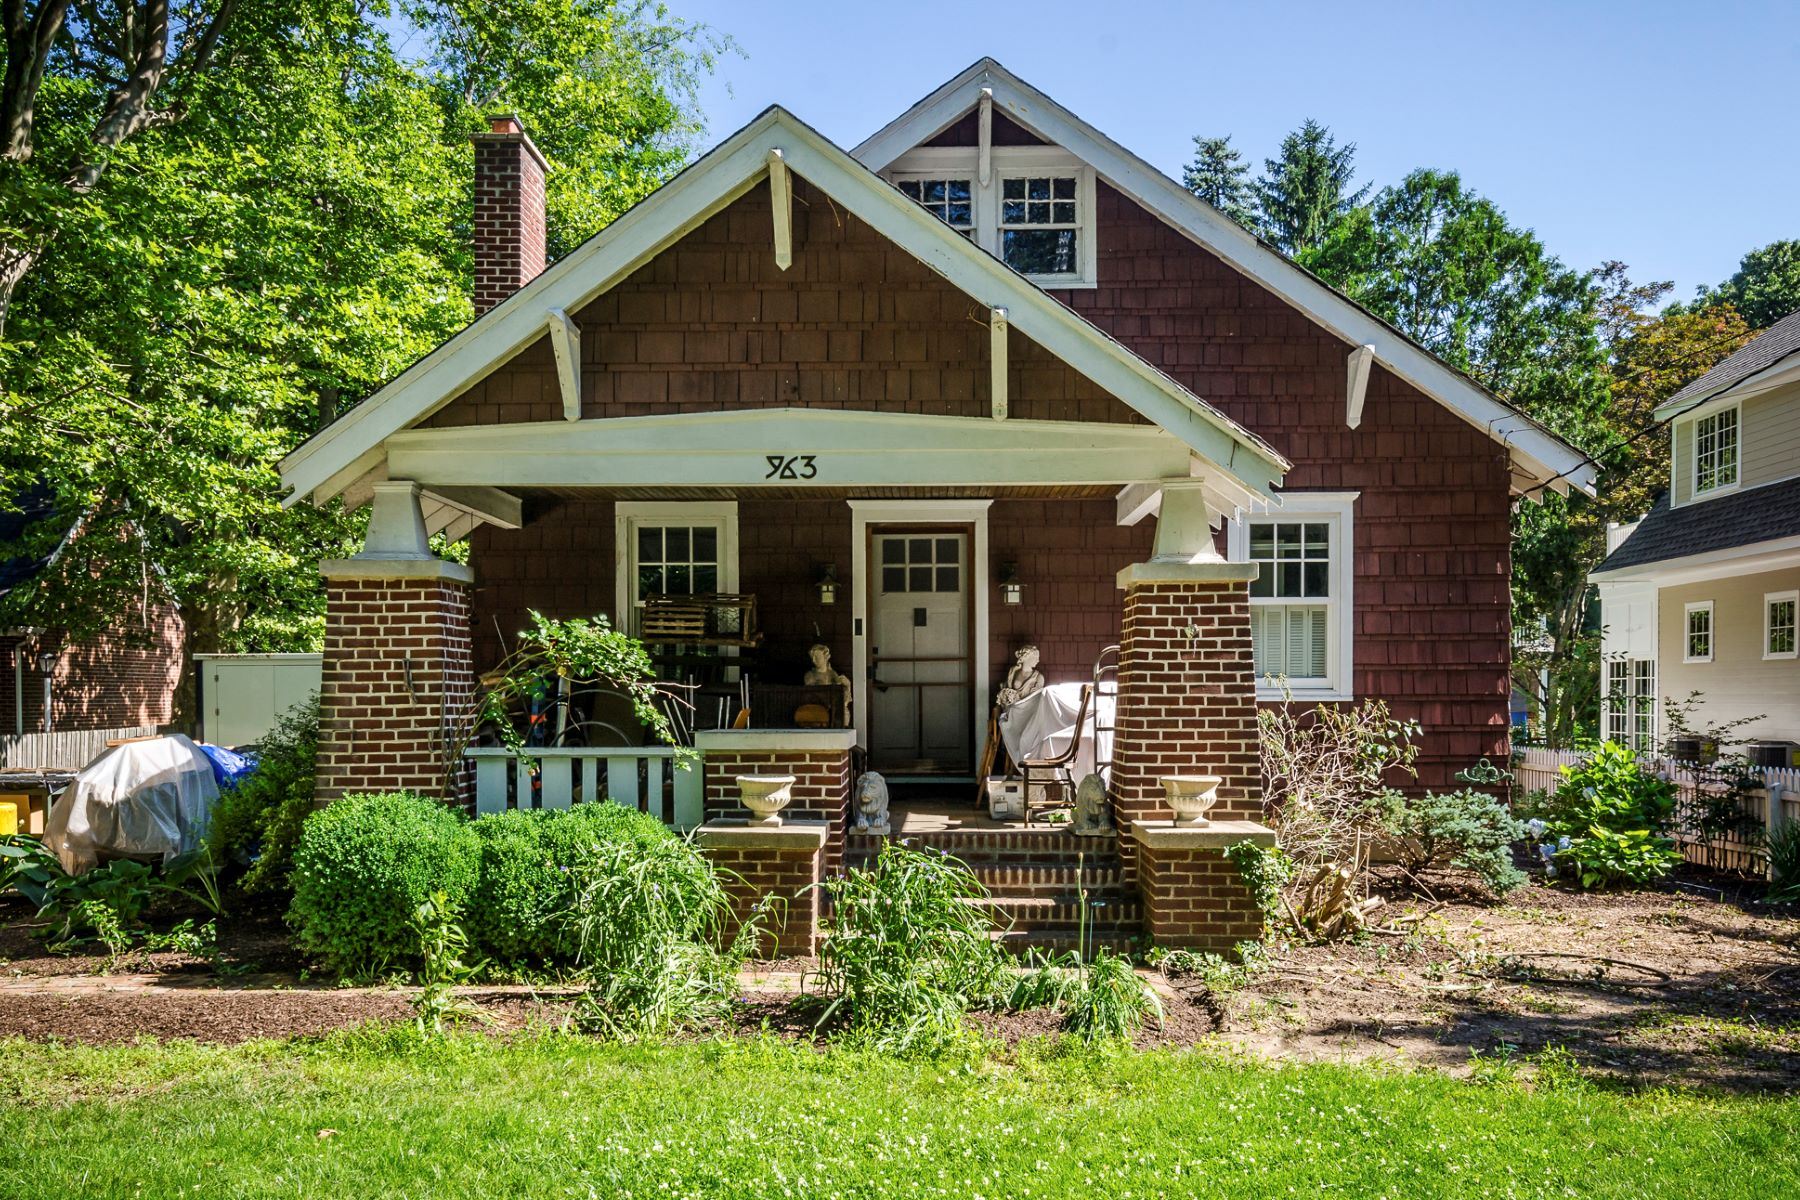 Single Family Homes for Sale at Classic Bungalow Is Ready for the Next Generation 963 Alexander Road, West Windsor, New Jersey 08550 United States